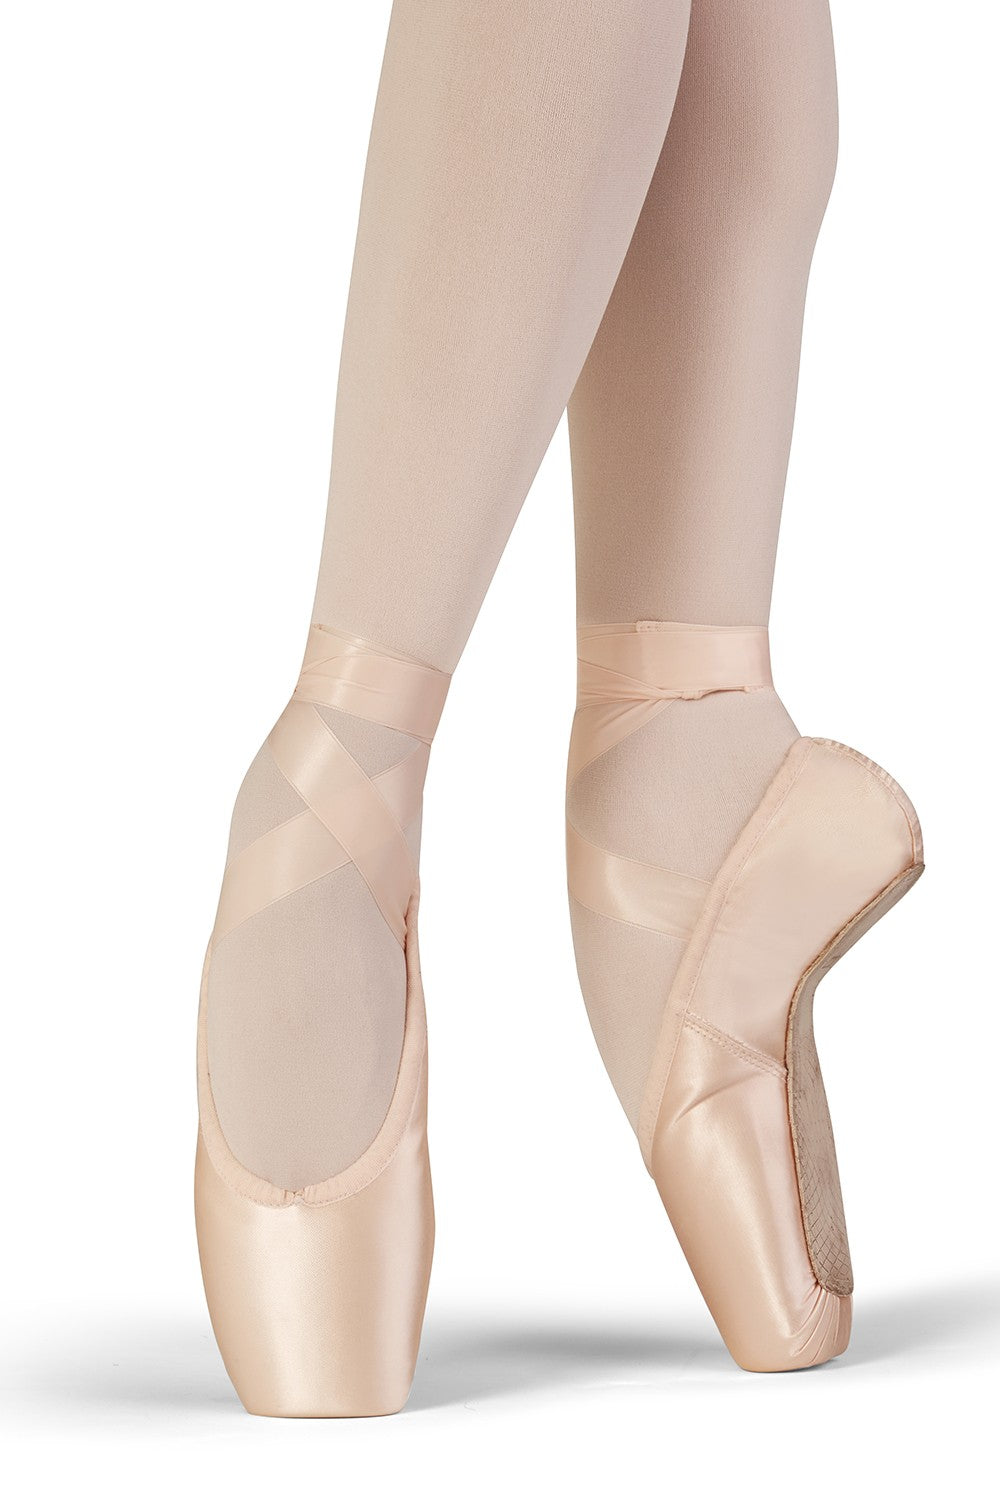 Bloch Women's Grace Pointe Shoes